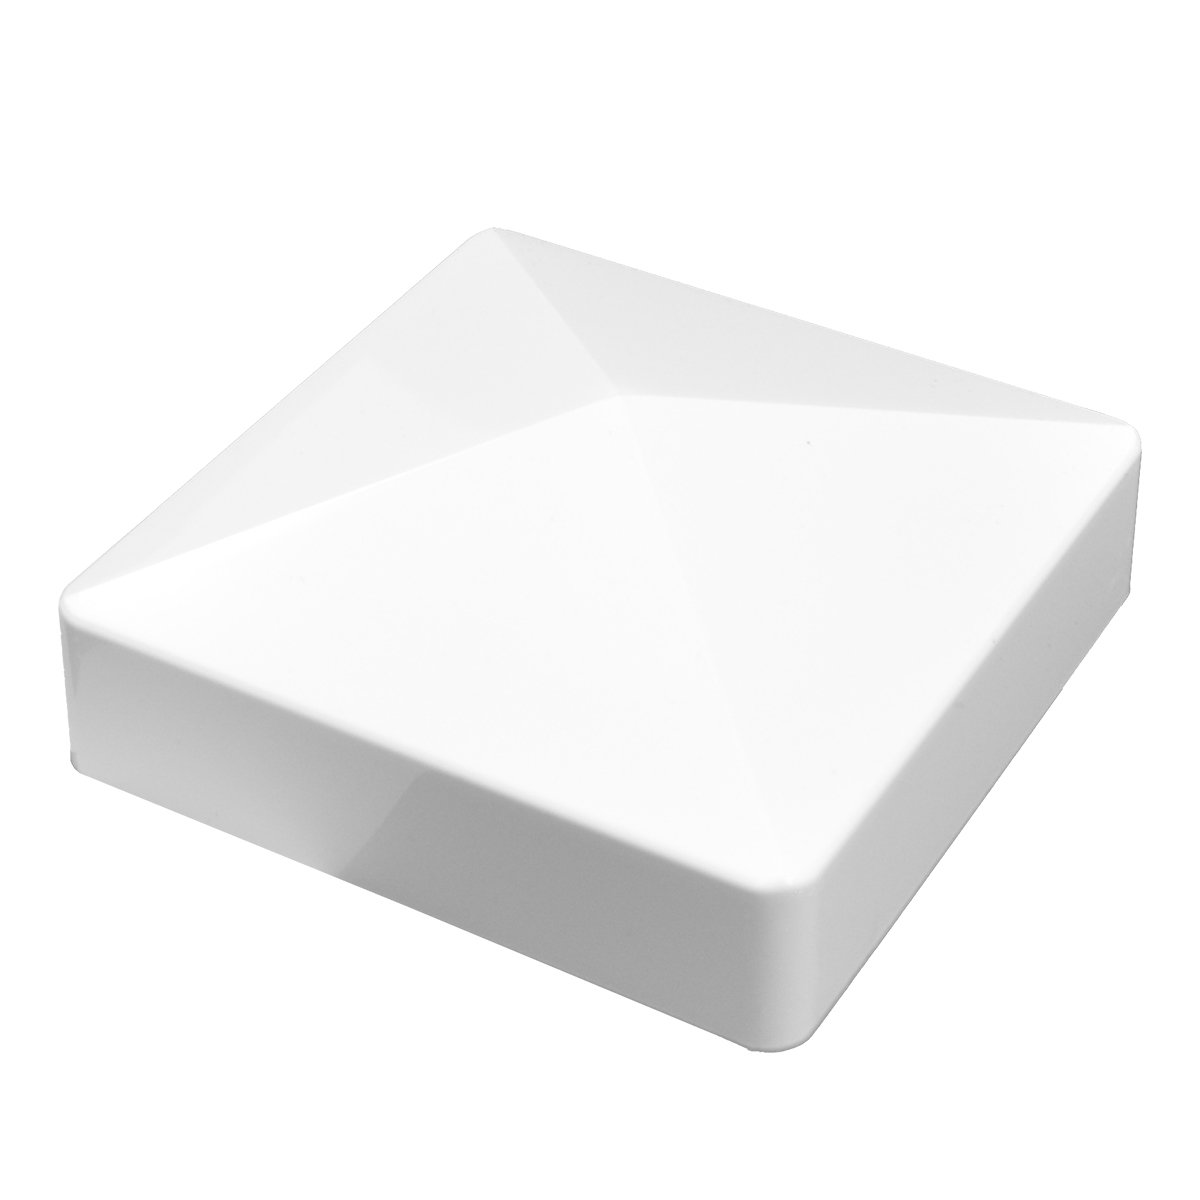 Durable White PVC Vinyl External Pyramid Post Cap For A True 5 Inch x 5 Inch Post   Single Pack   AWCP-EXT-5